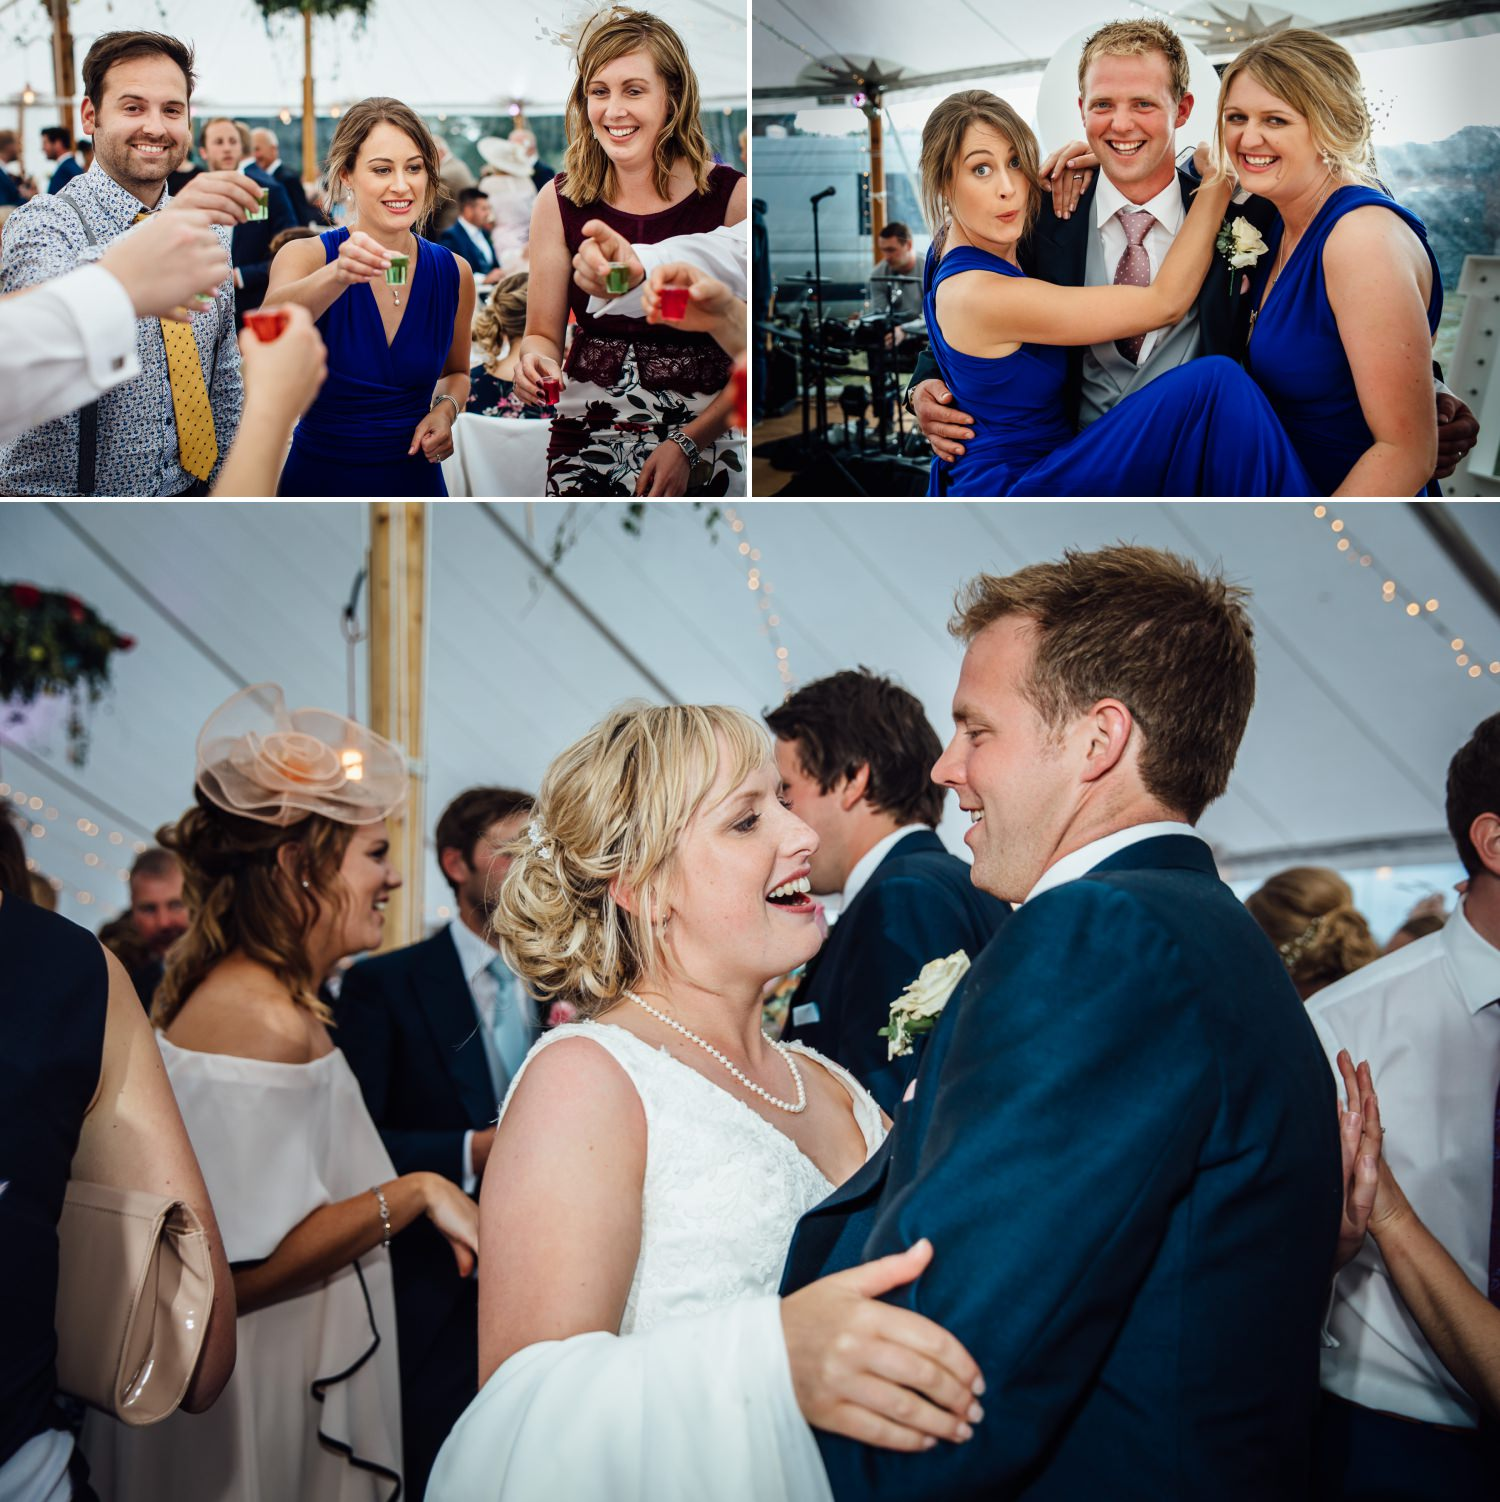 First dance photography in Marquee at farm wedding in Macclesfield, Cheshire